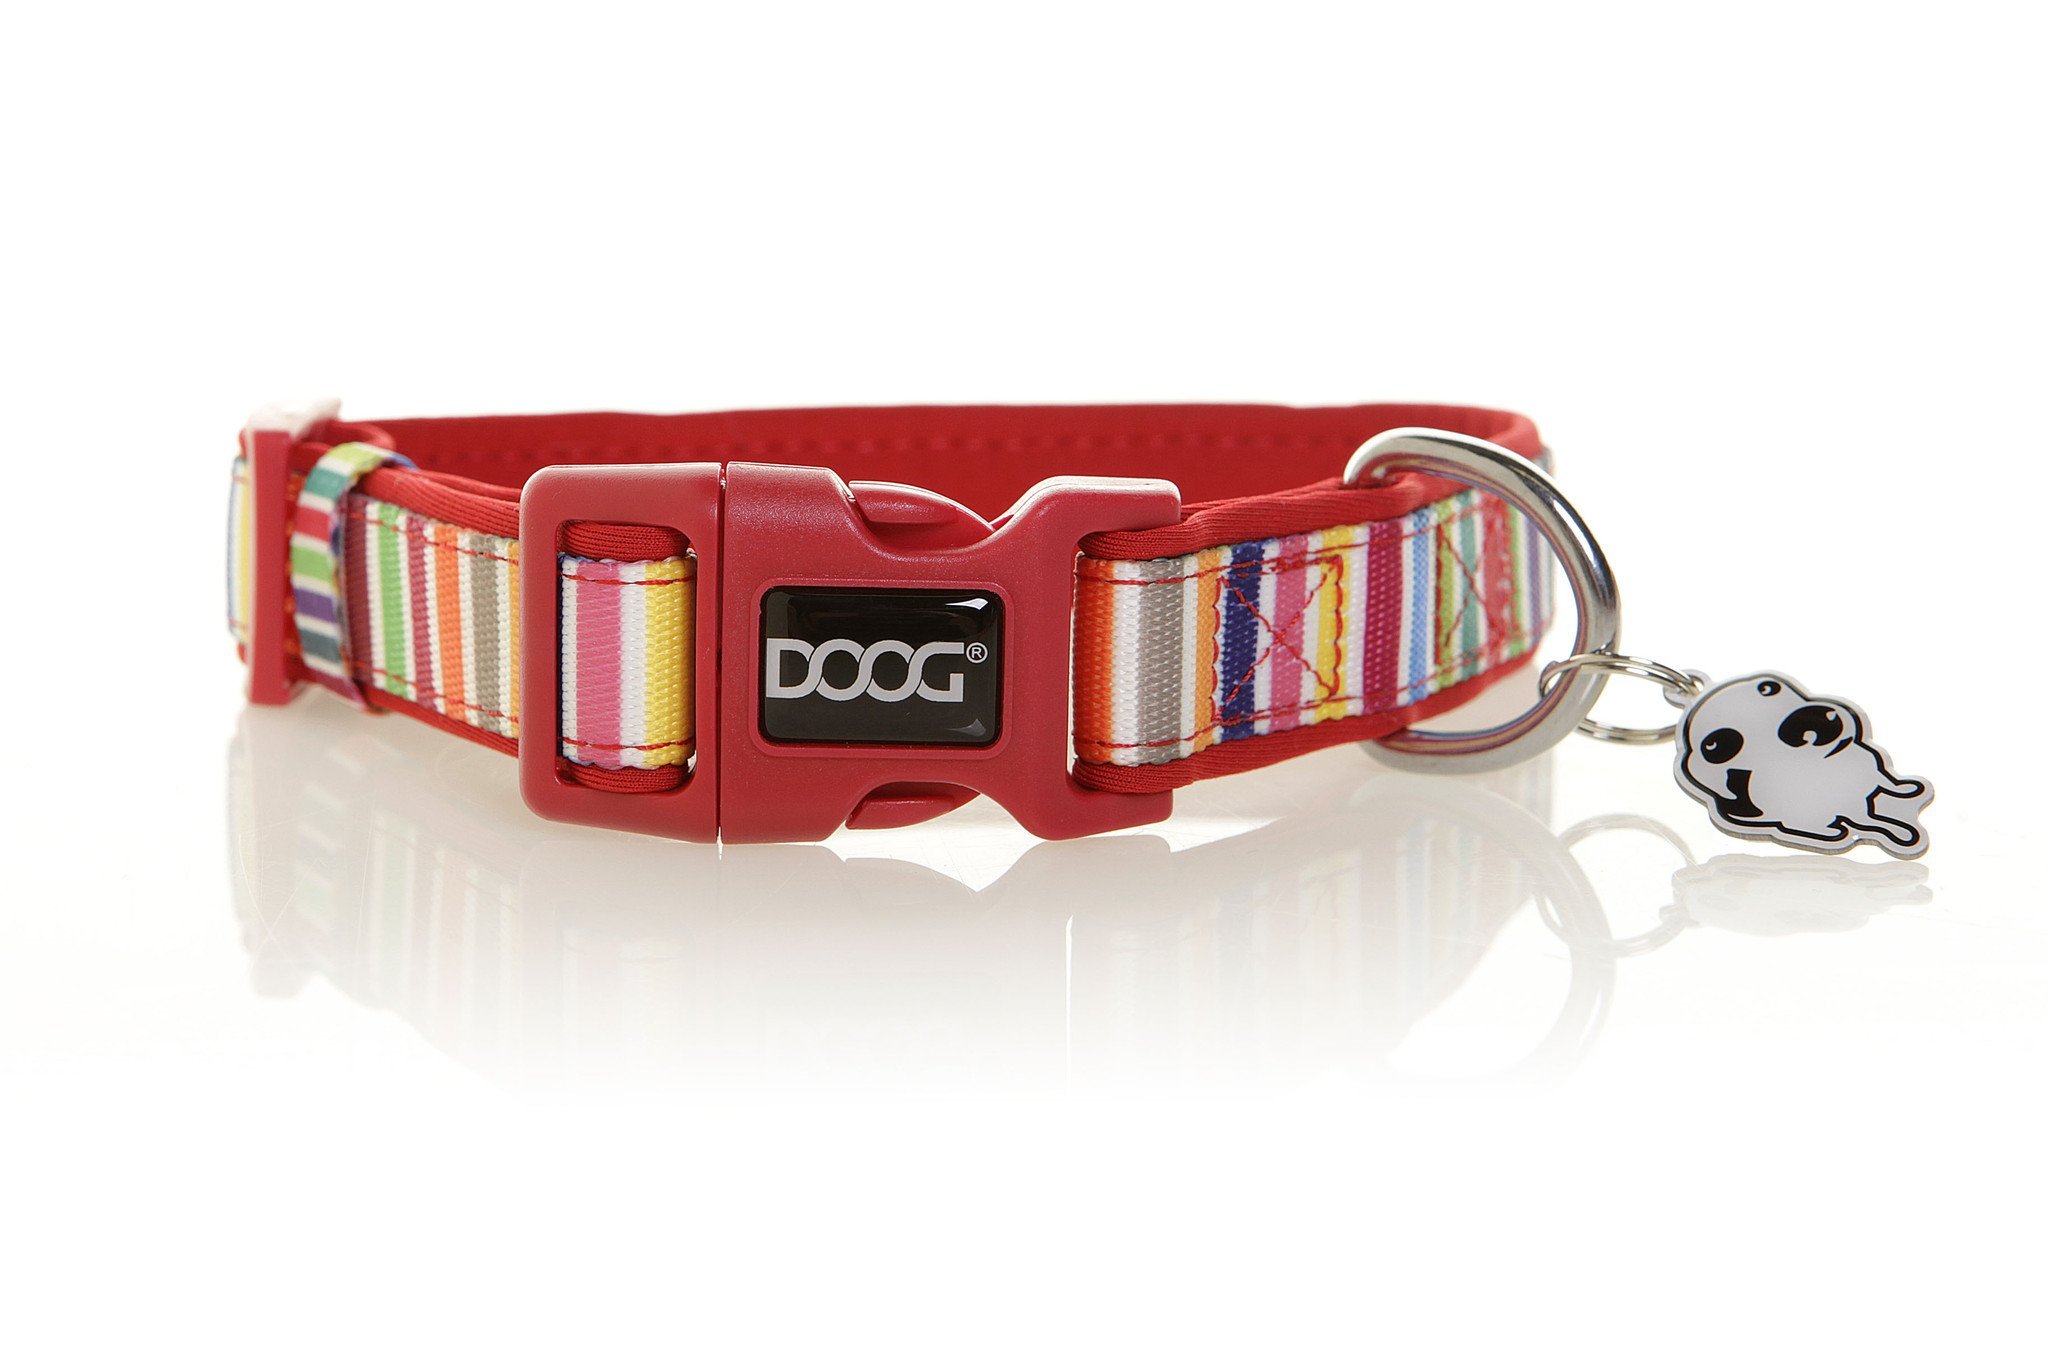 Dog Owners Outdoor Gear COLMCS-M